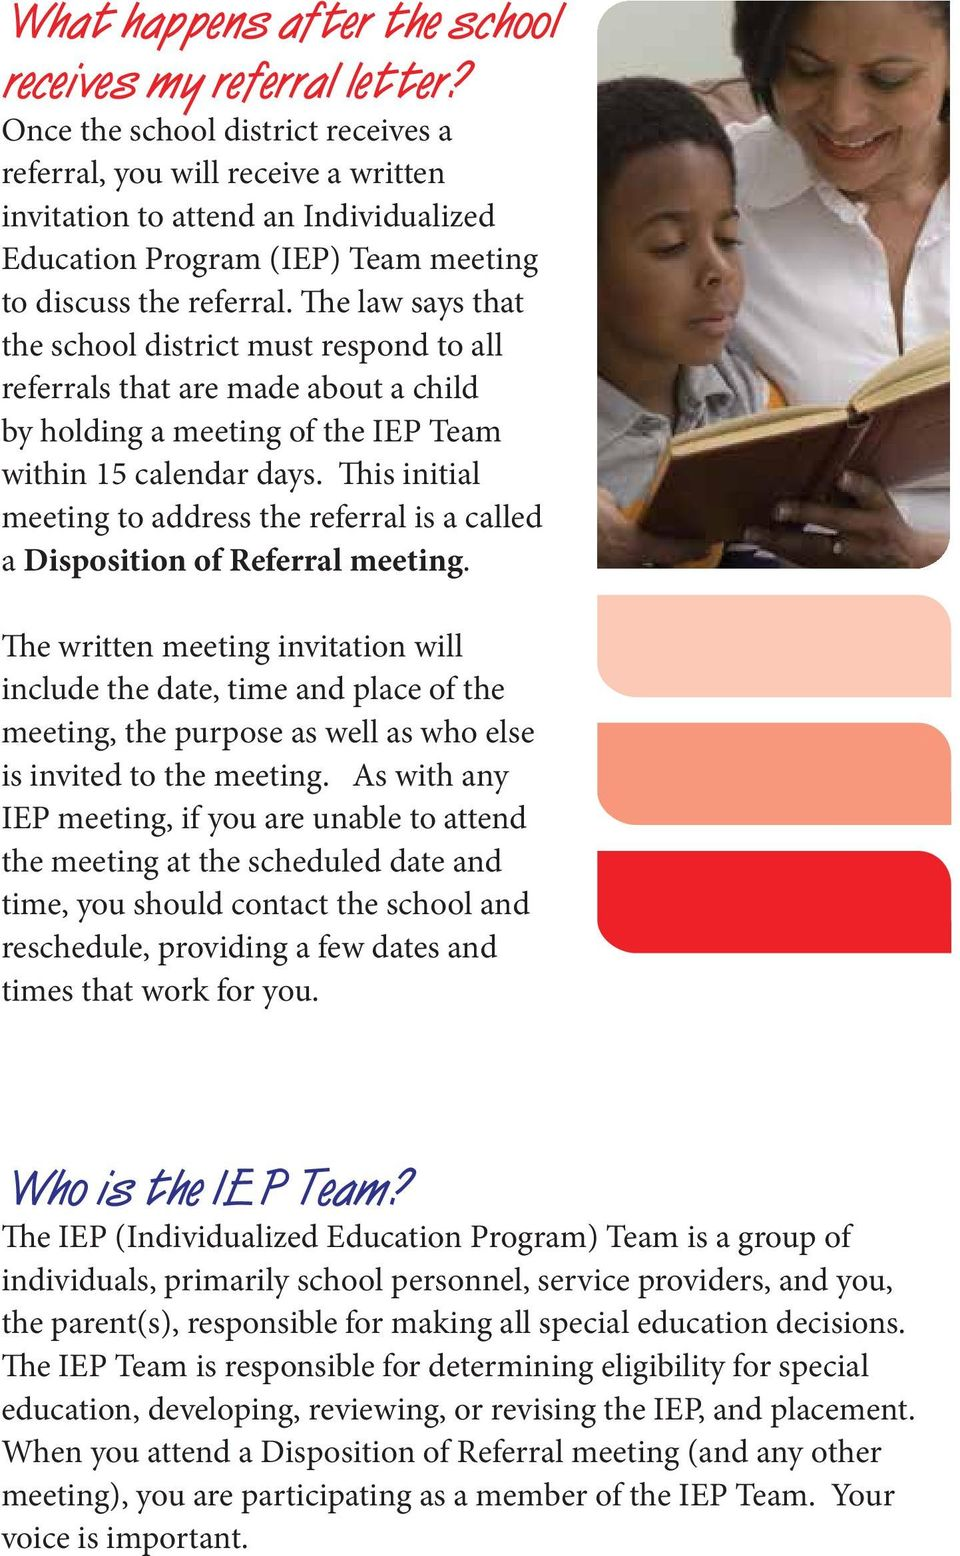 The law says that the school district must respond to all referrals that are made about a child by holding a meeting of the IEP Team within 15 calendar days.